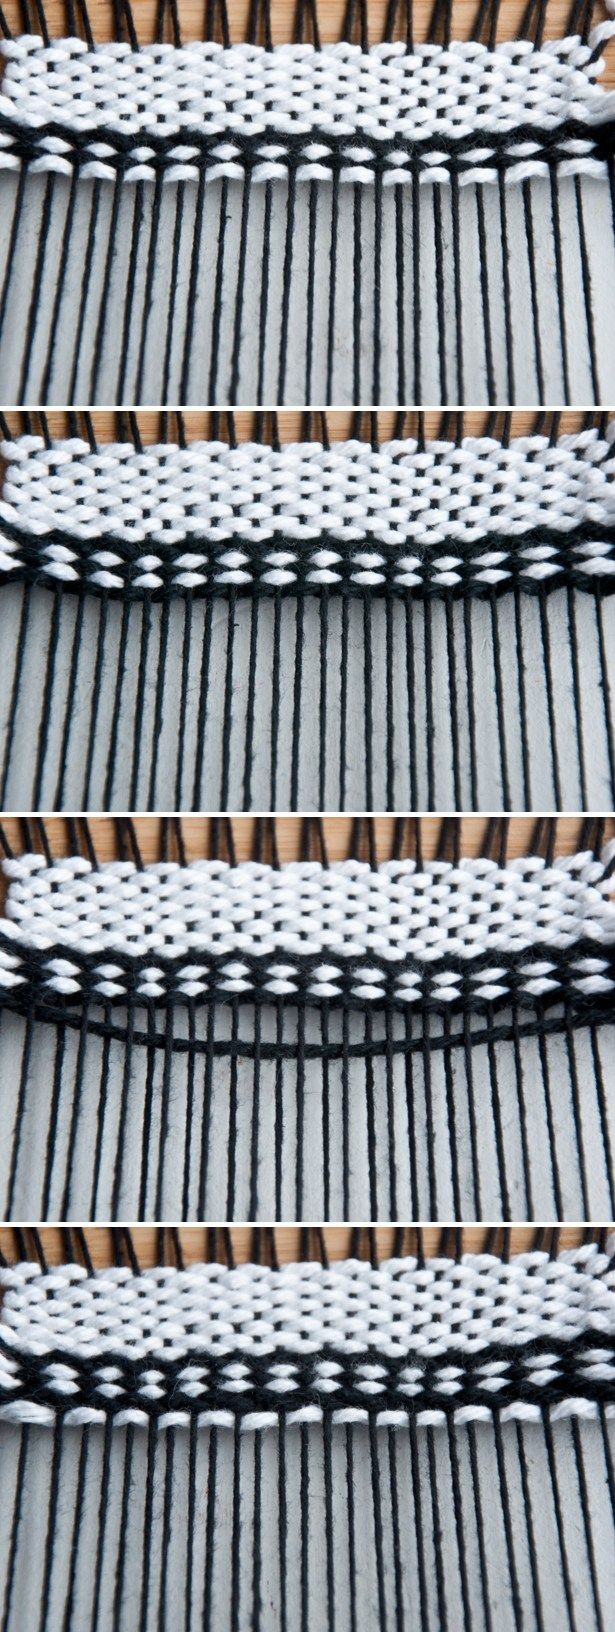 Oval Draft Pattern | The Weaving Loom